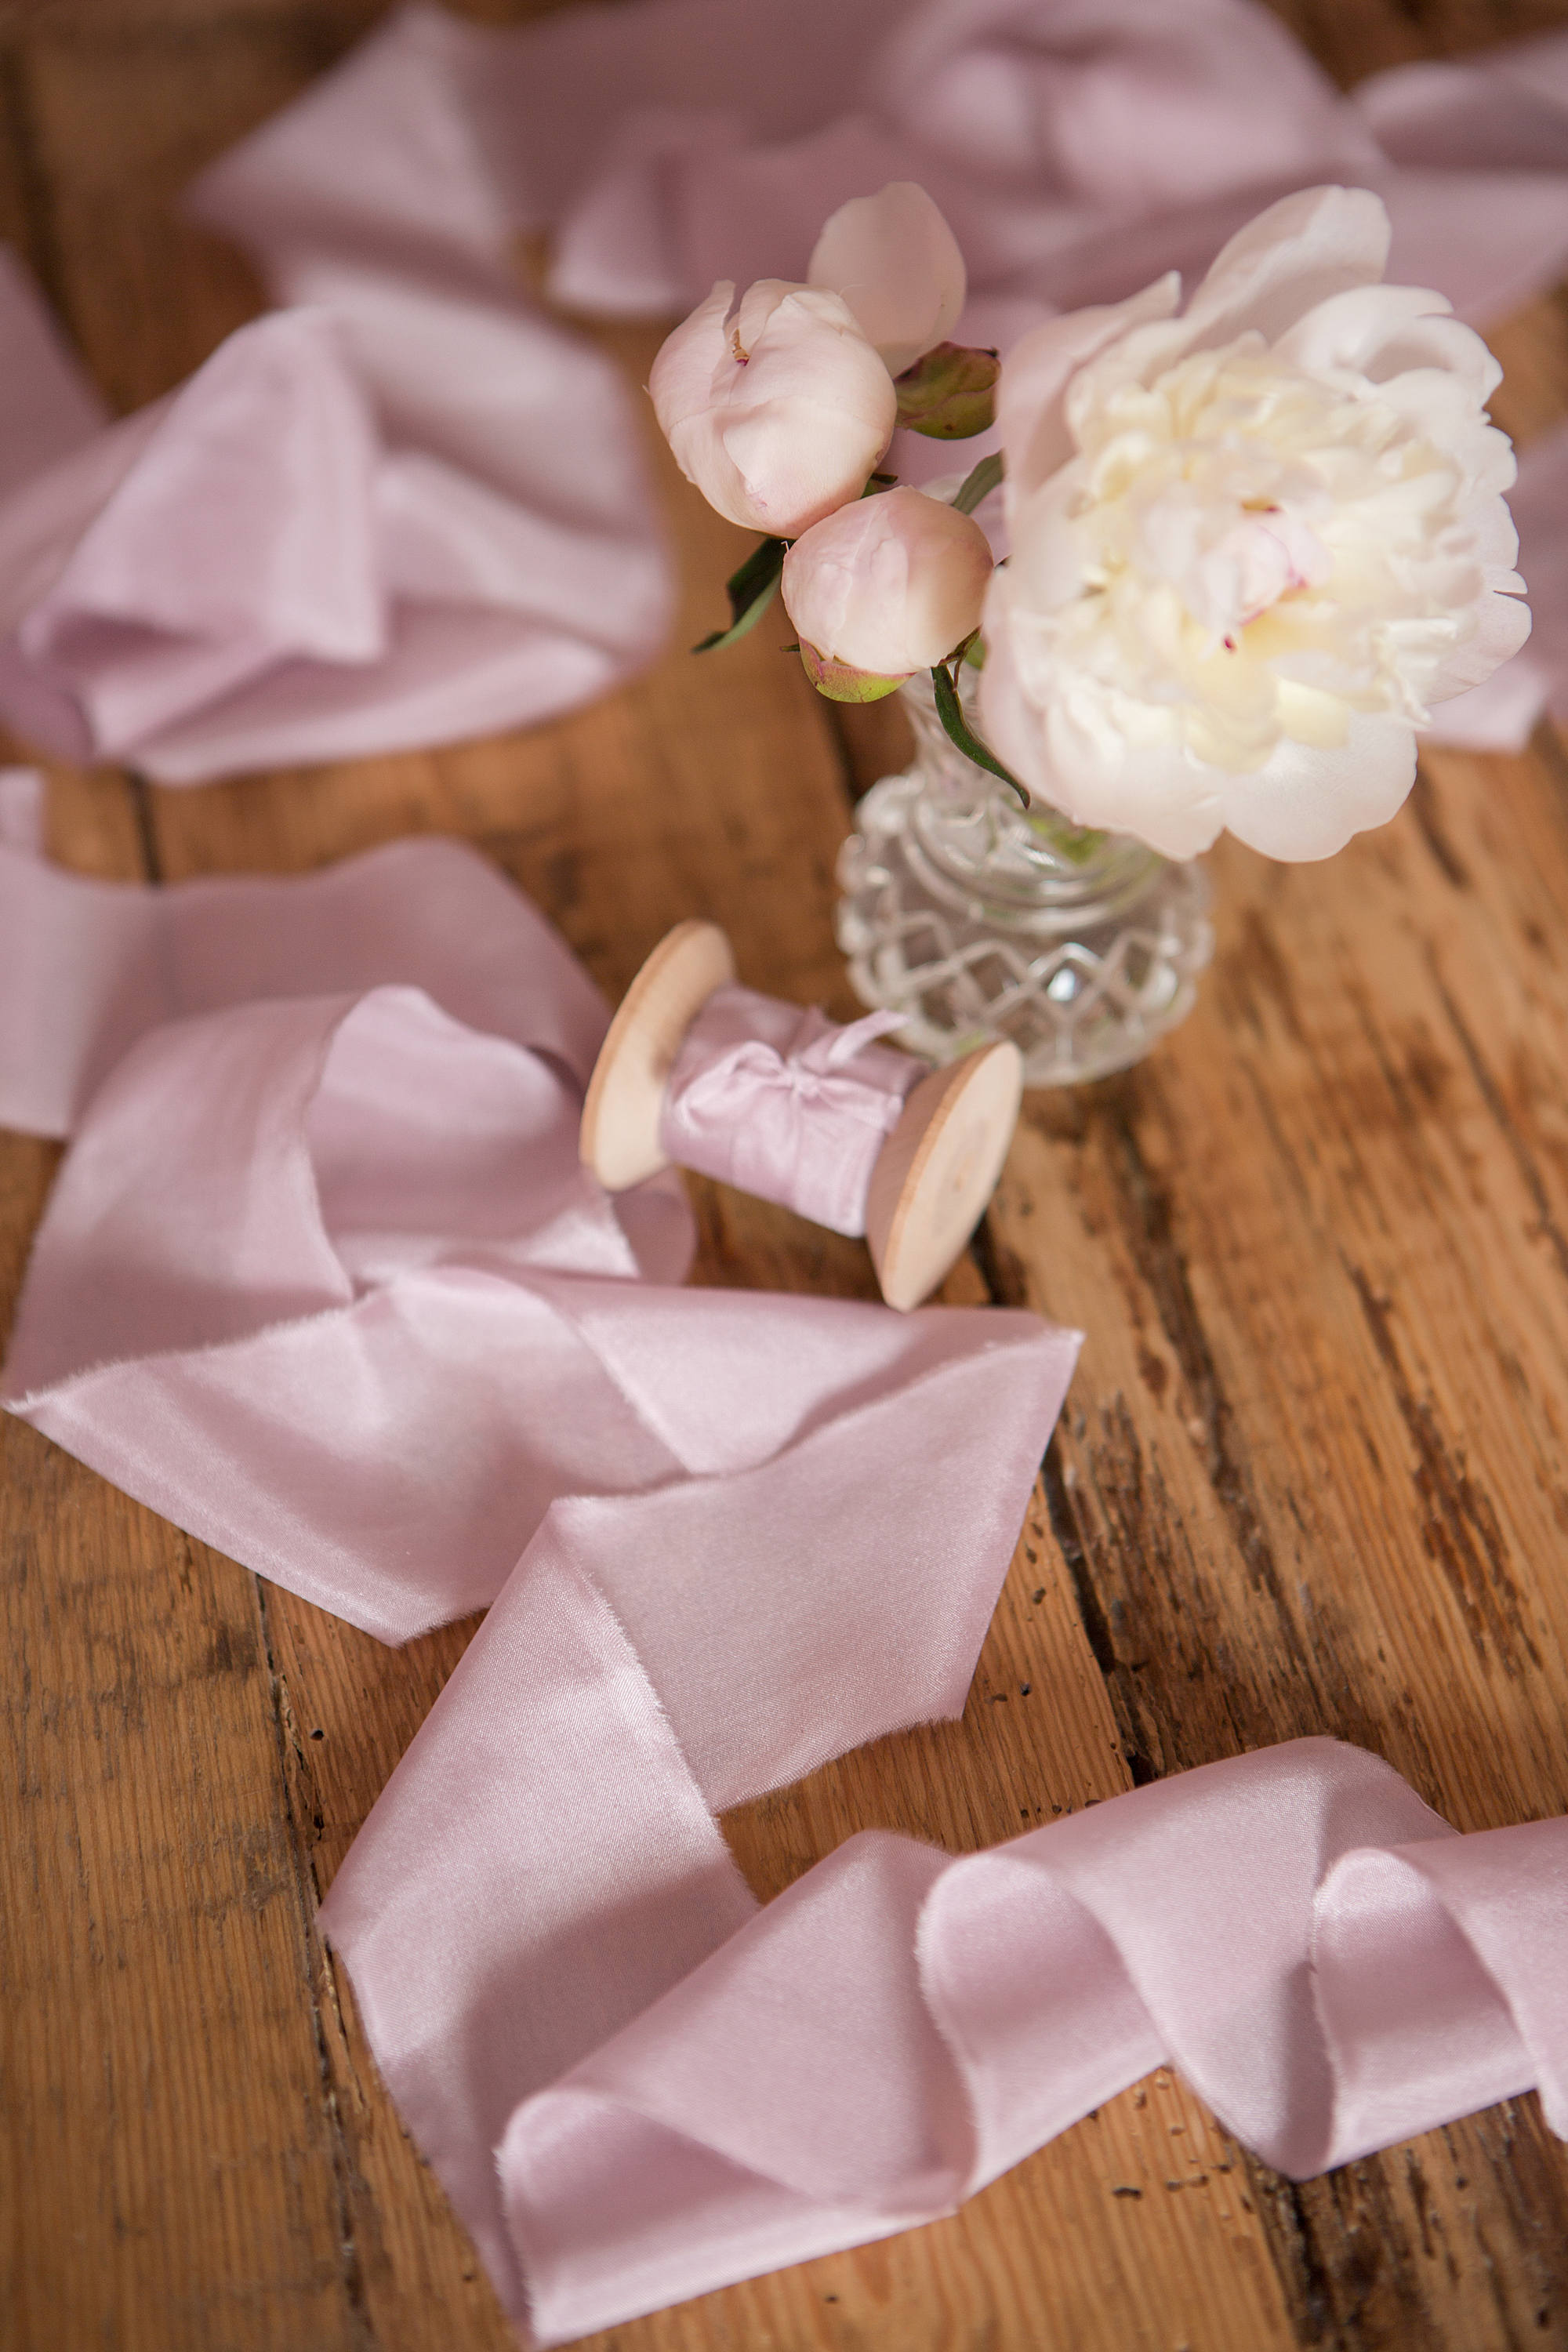 Blush Silk Ribbon, hand dyed Bridal Bouquet ribbon, 1 inch pale lilac habotai silk, invitation ribbon by yard, Wedding Luxurious Silk Ribbon.jpg